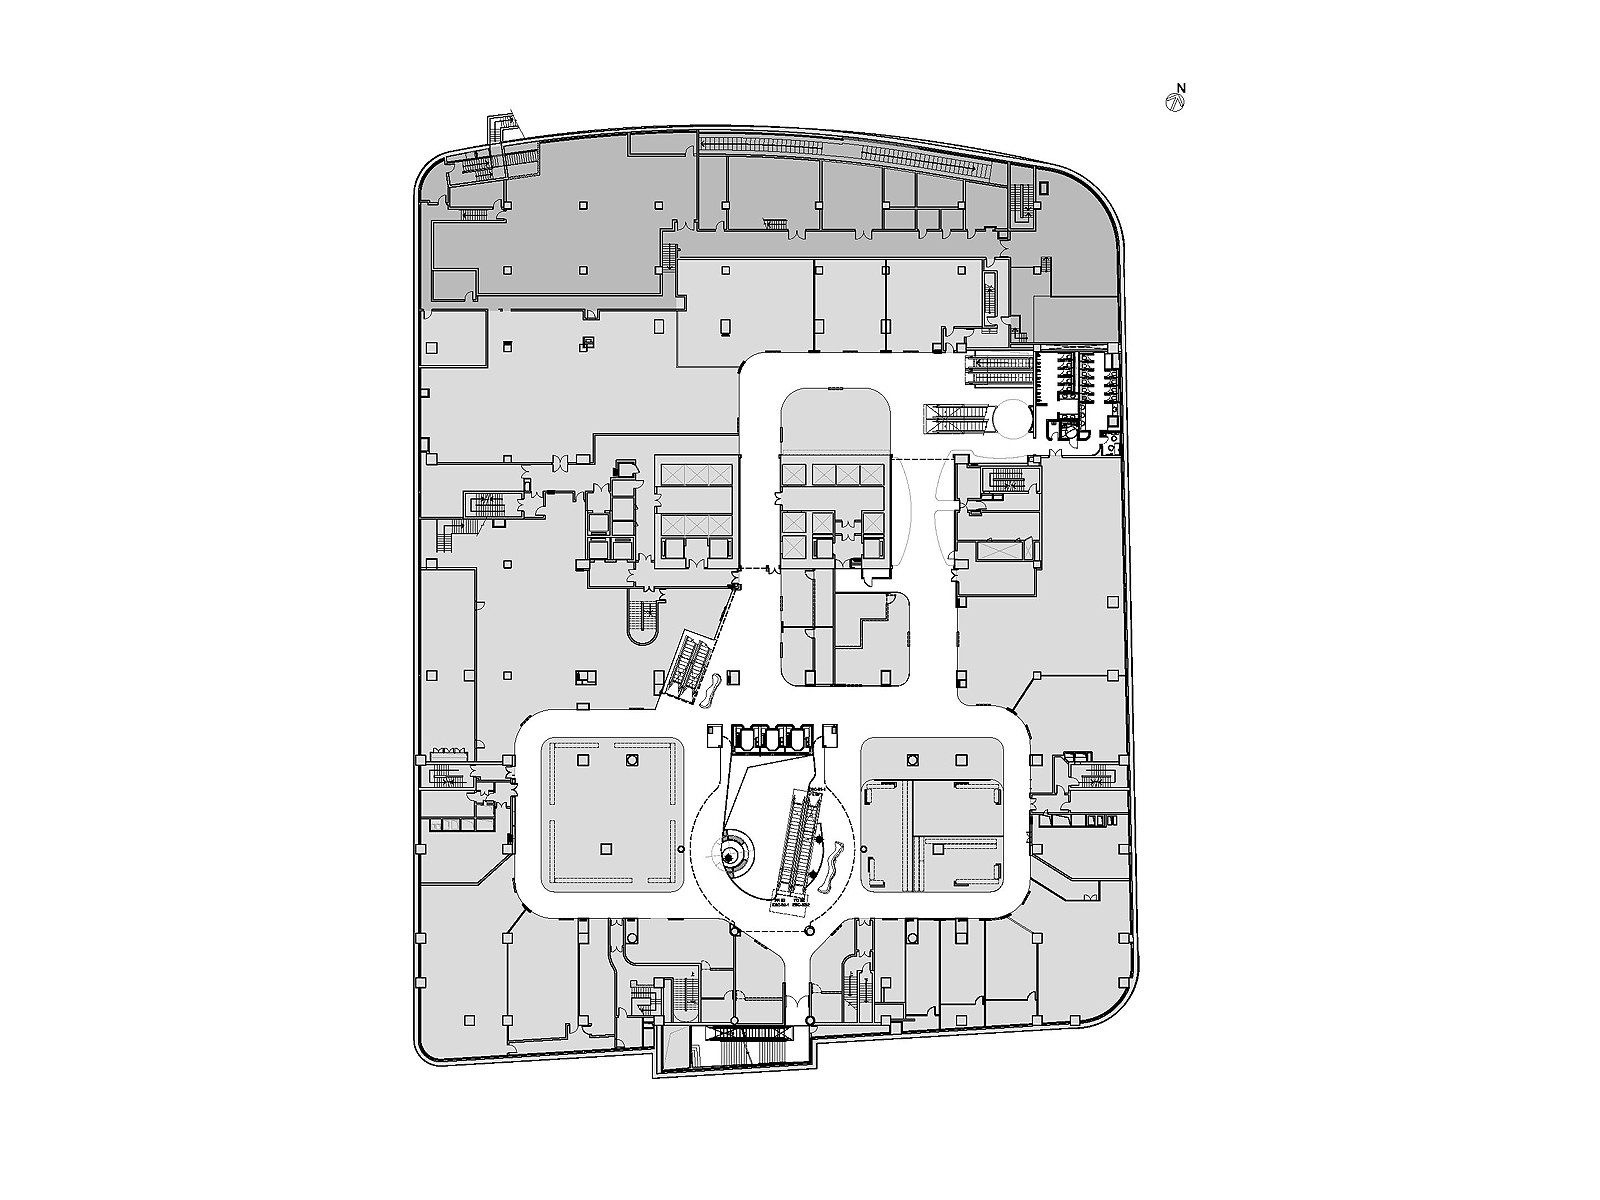 Awesome Basament Floor Plan